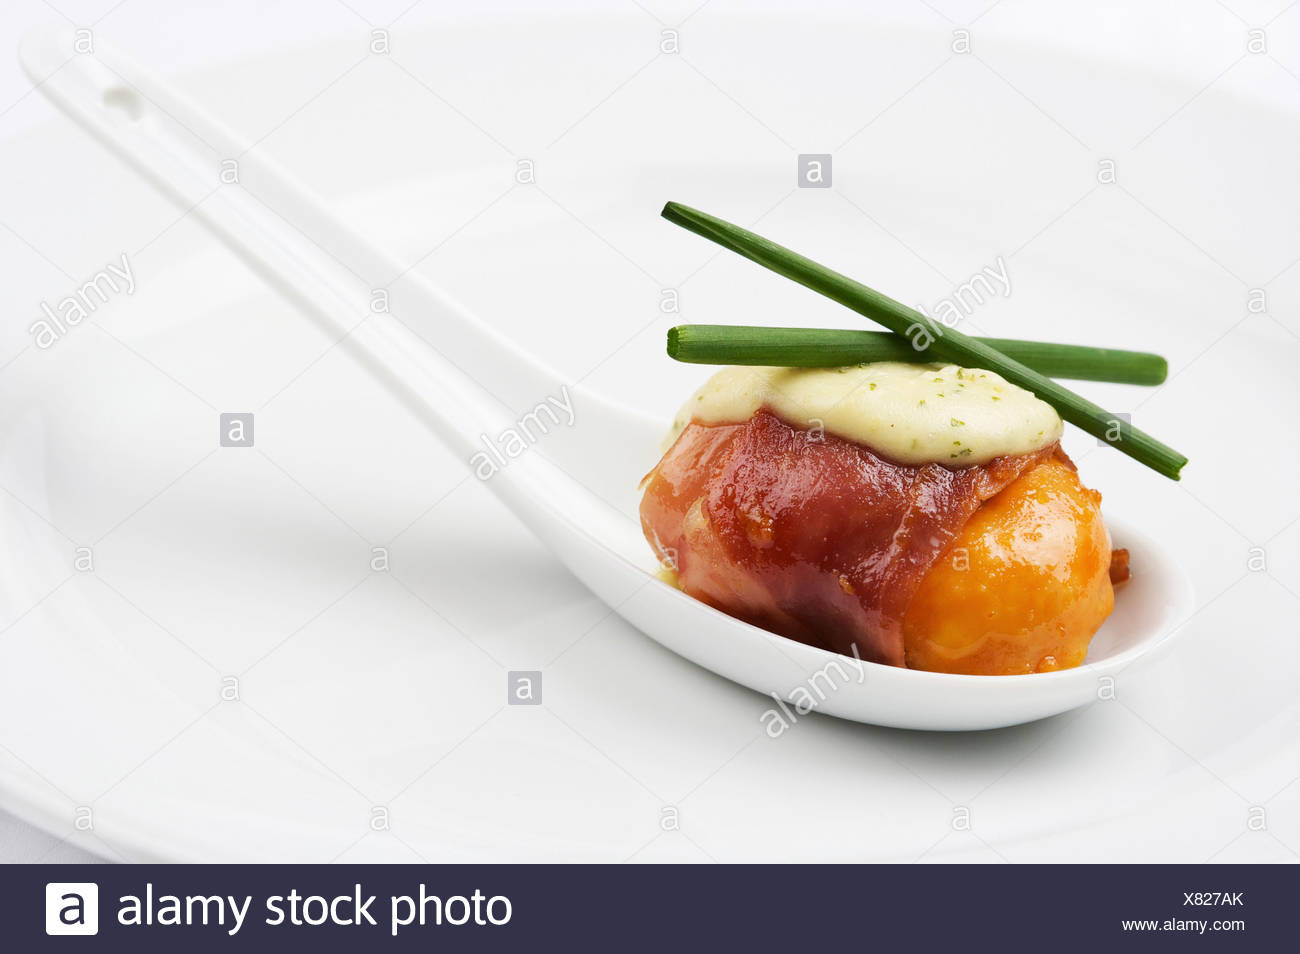 Spoon of scallop with pancetta - Stock Image